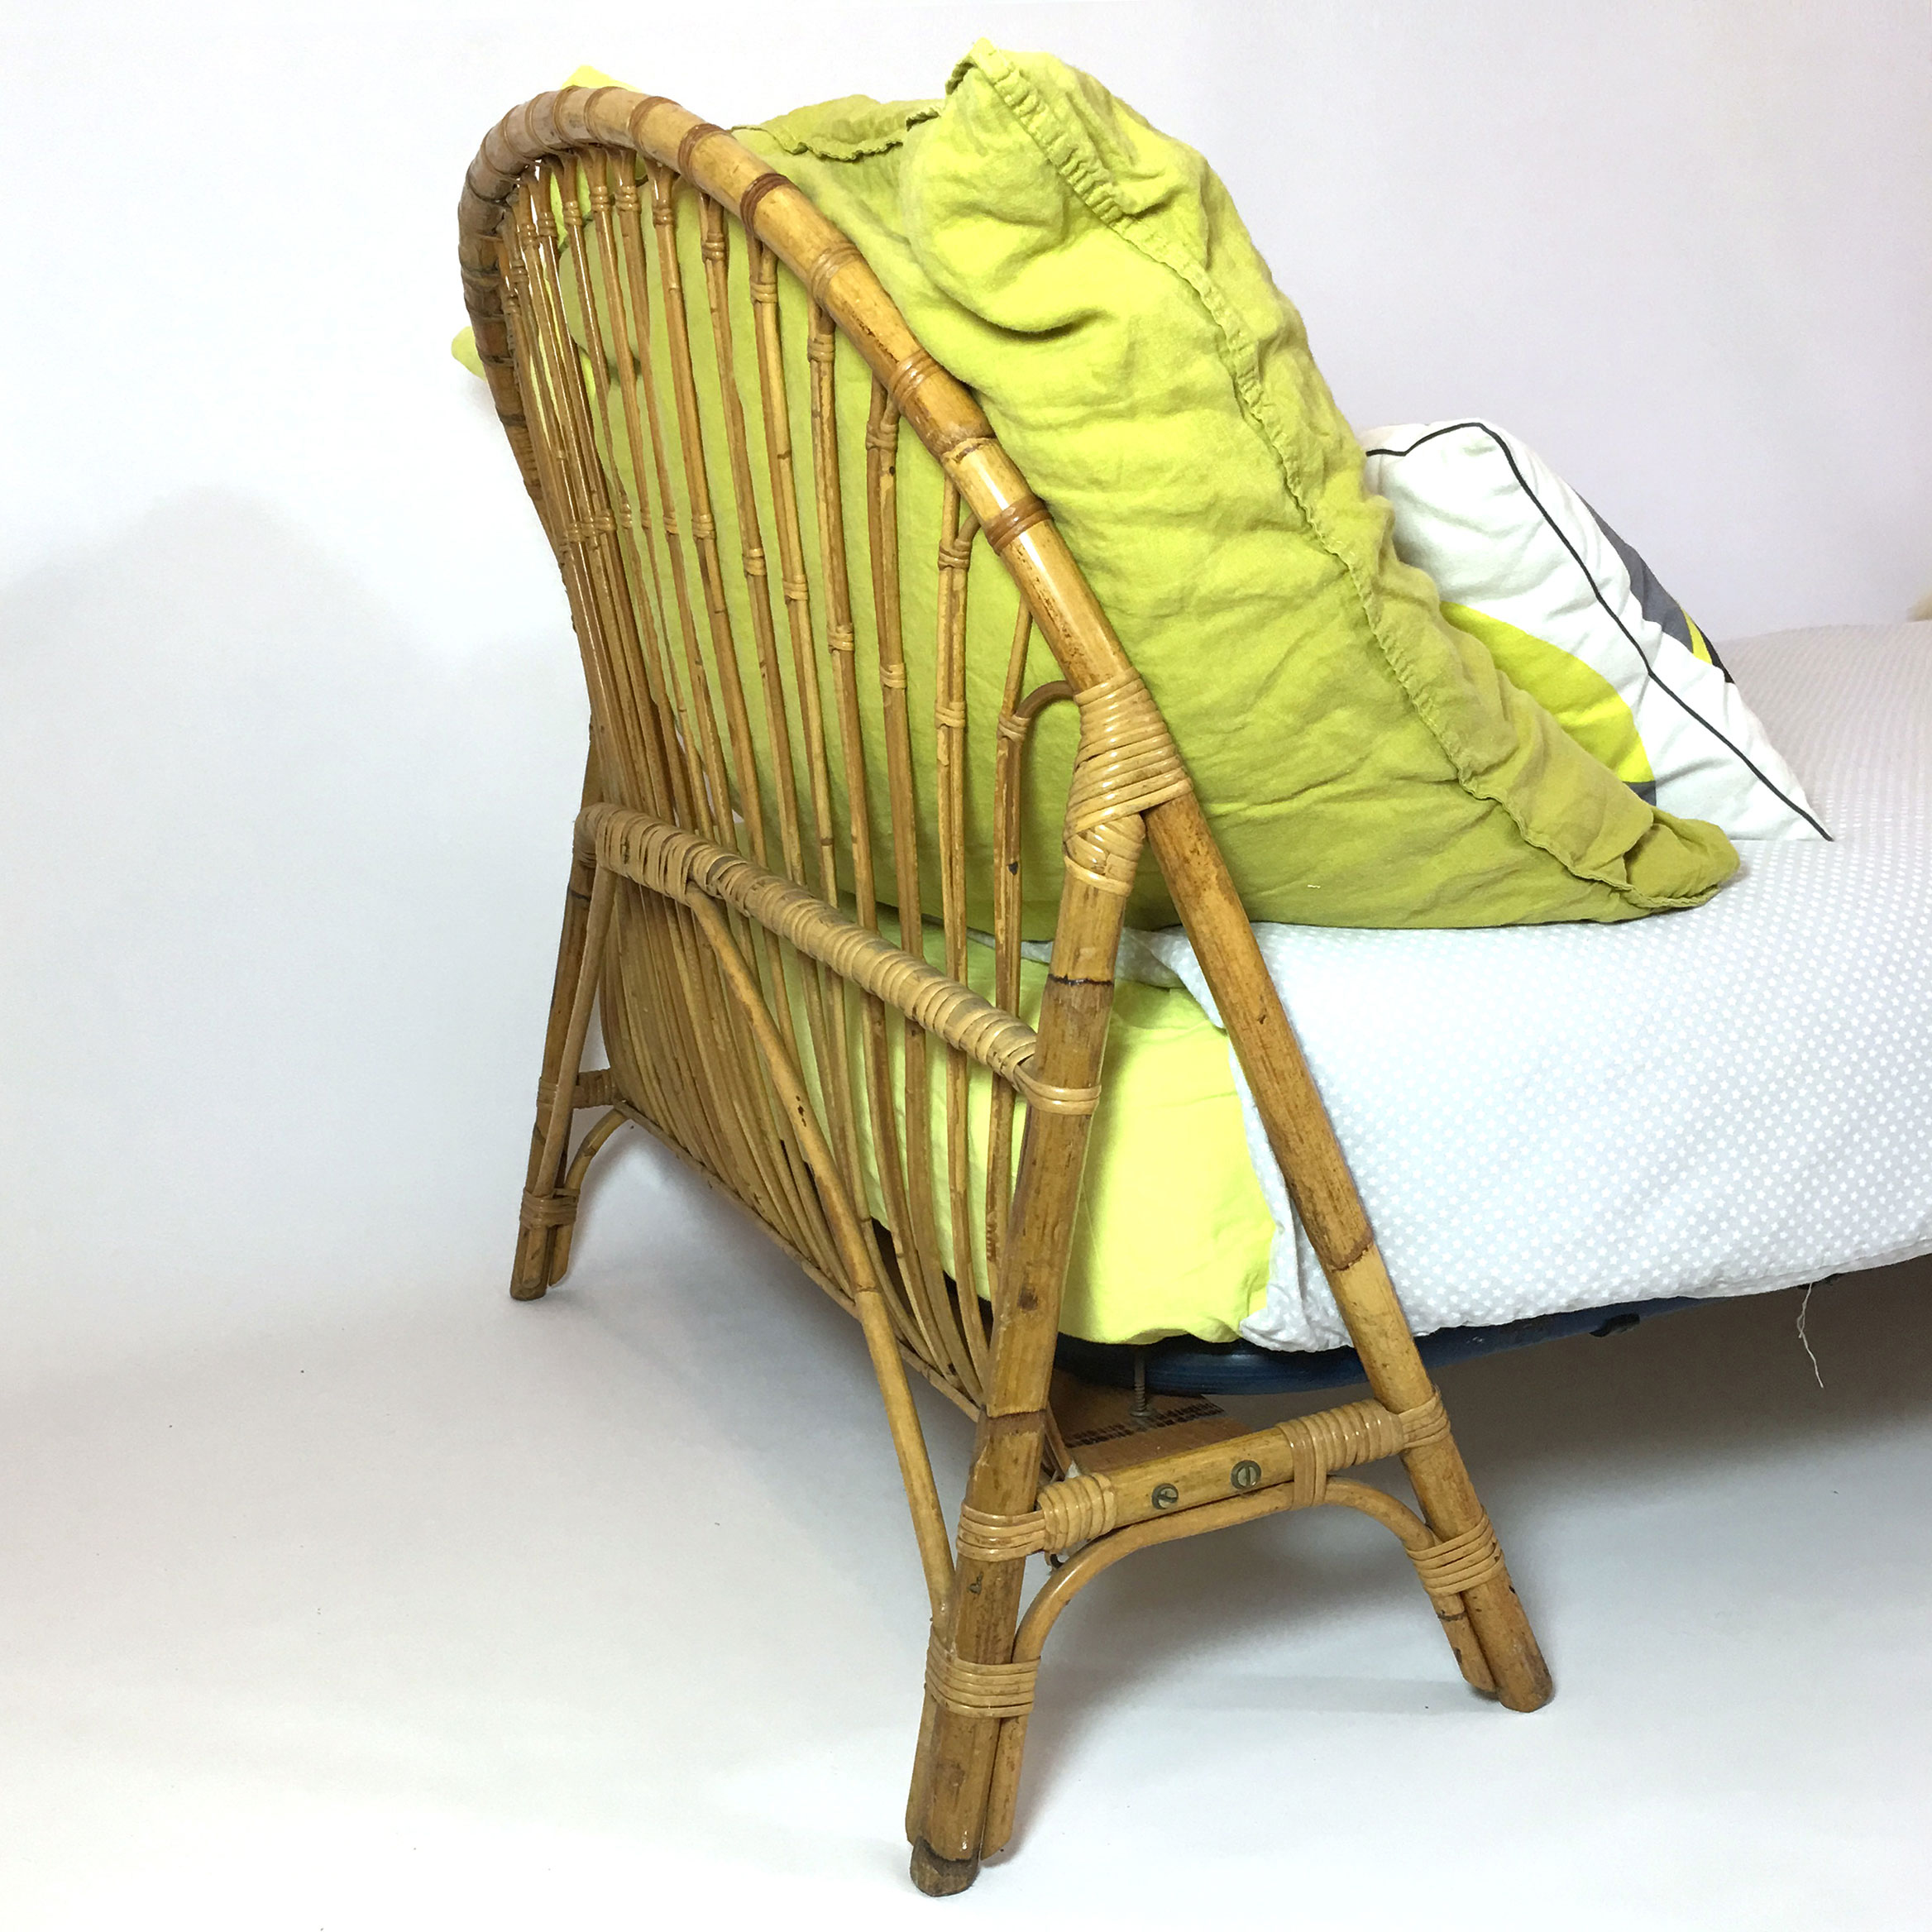 Bamboo bed structure